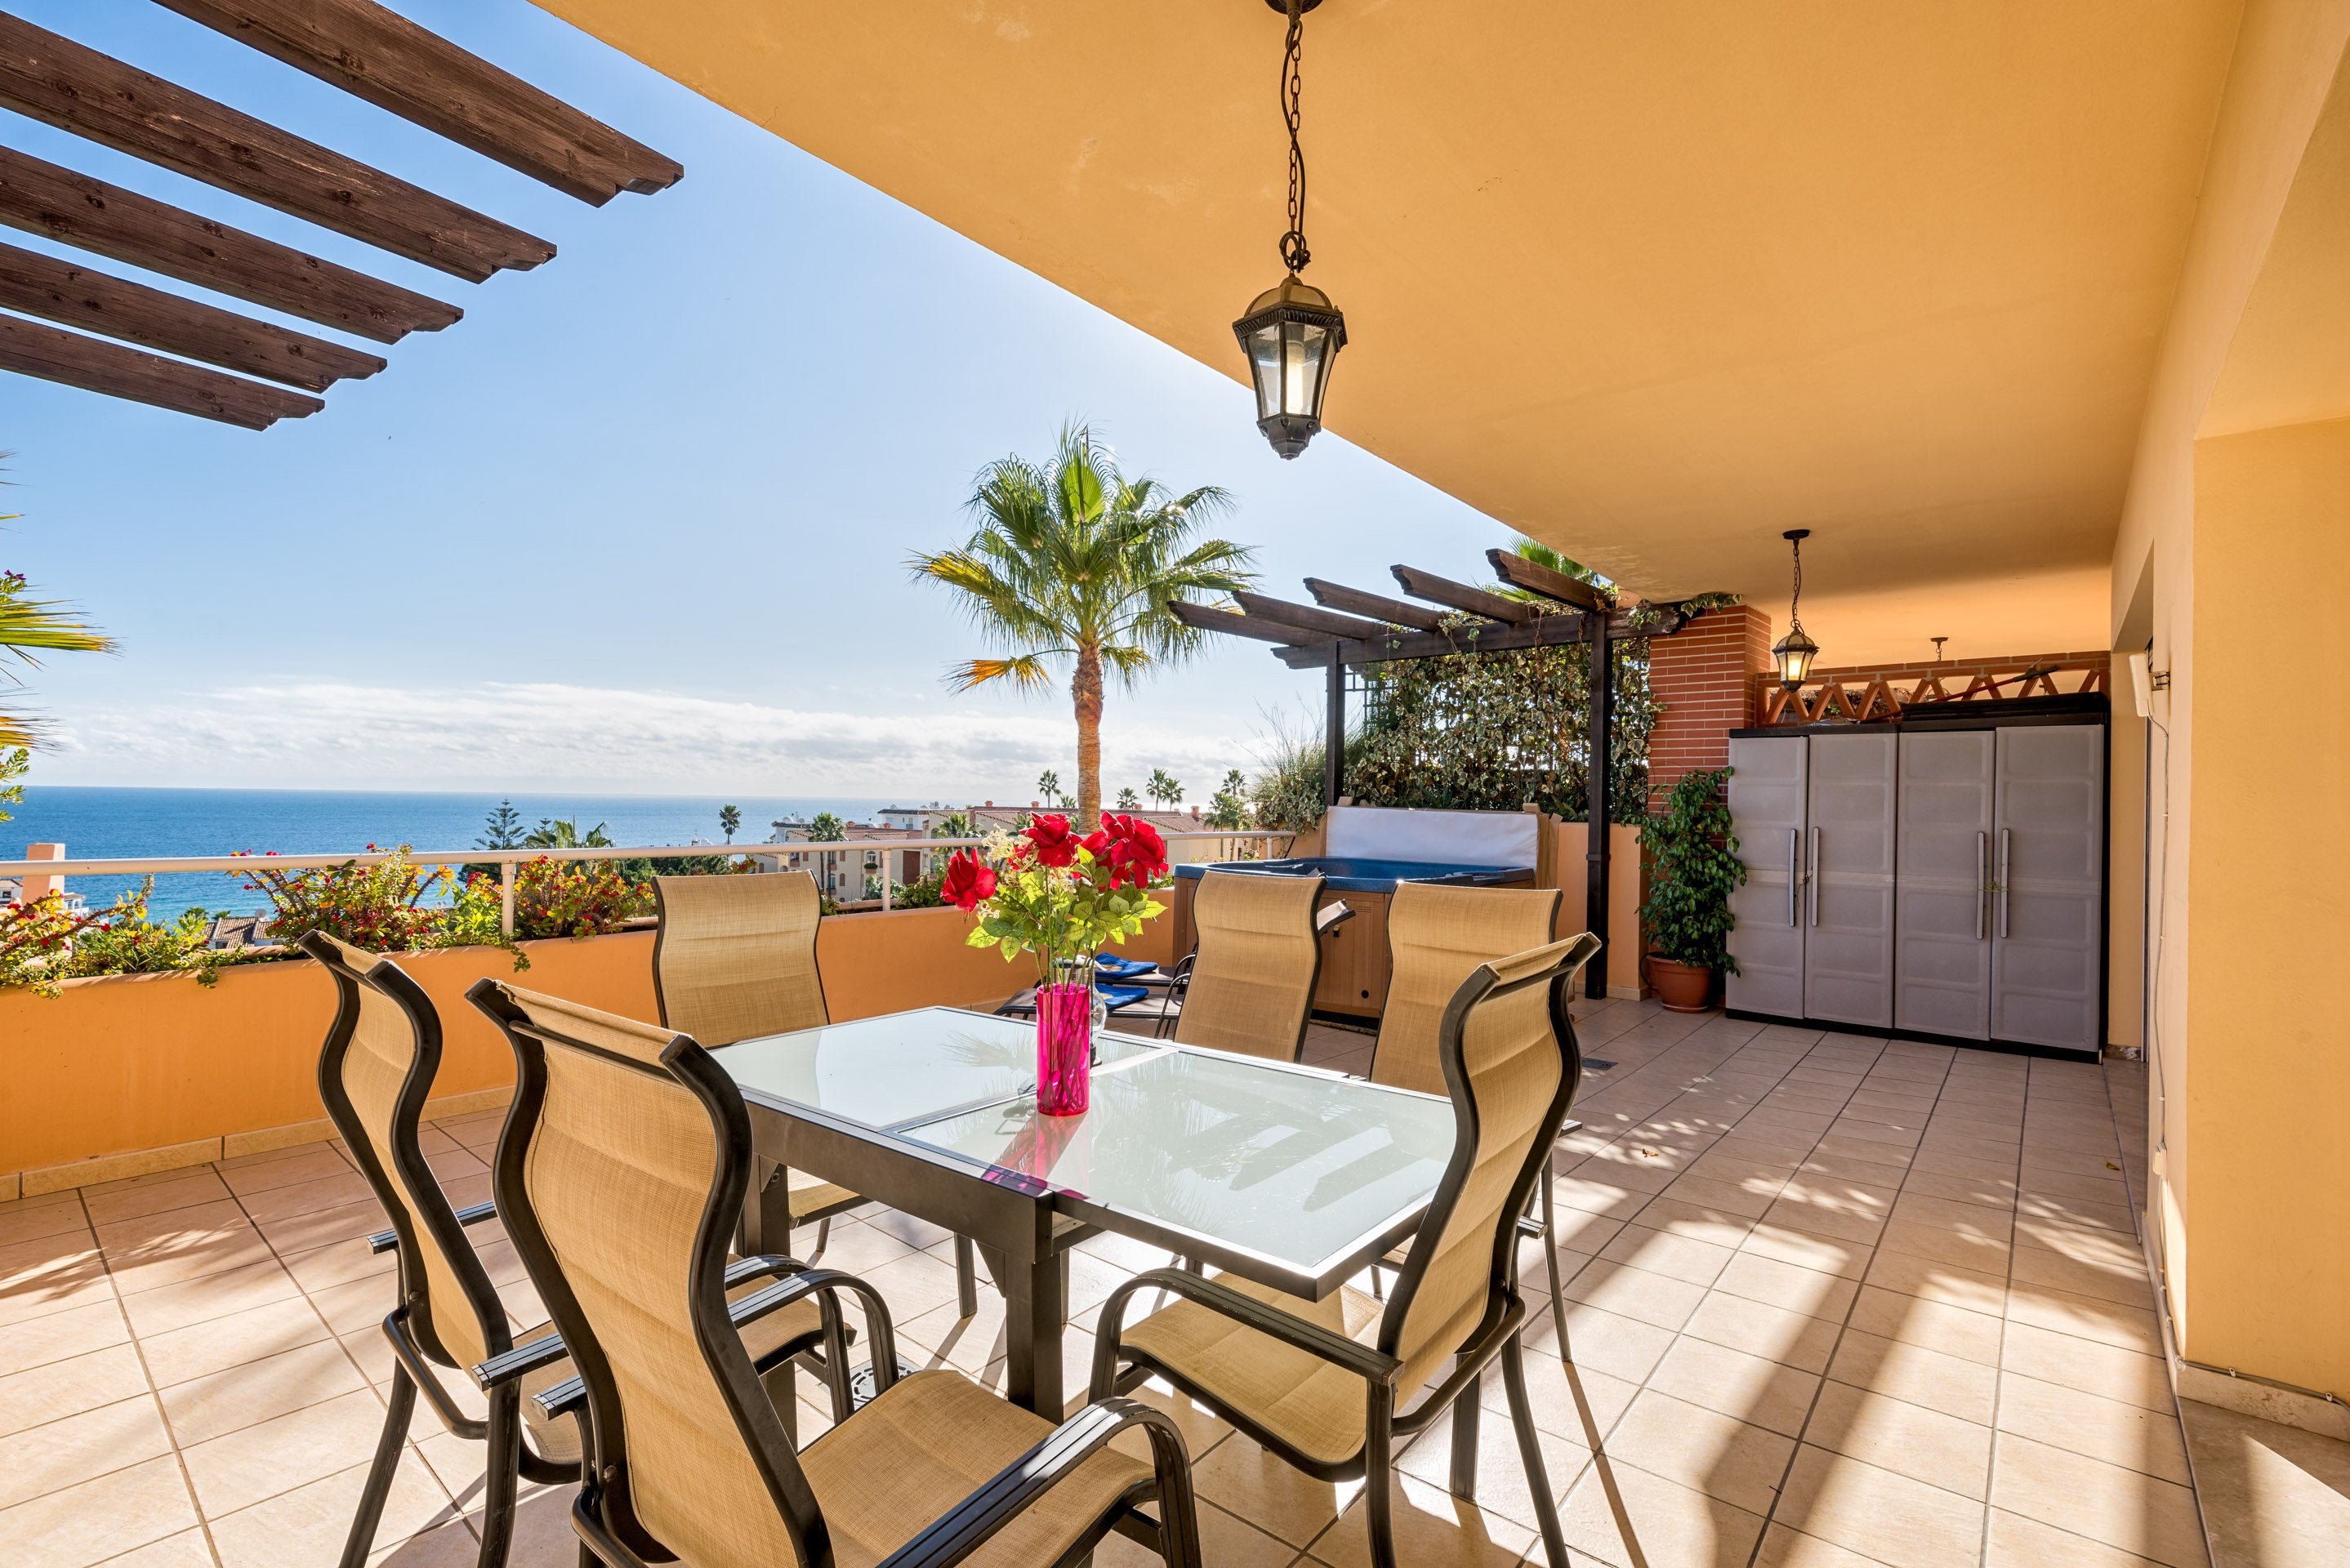 Luxury 2BR Sea View Condo 3 in Malibu Mansions, Heated Pool